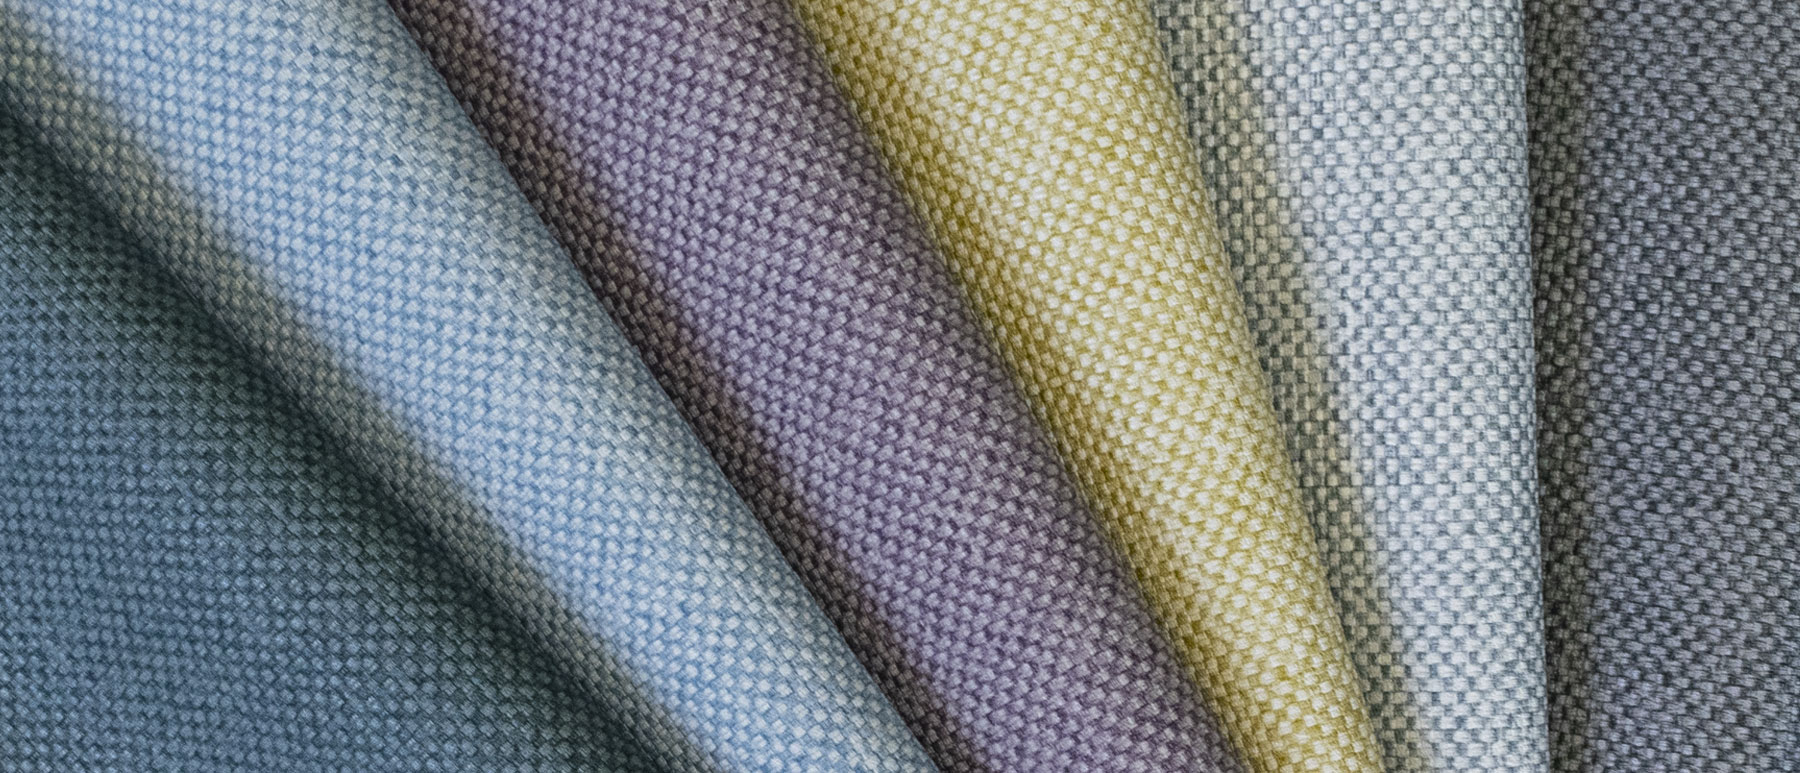 MAGLIA™,The New Ear in Textile Looking Coated Fabrics